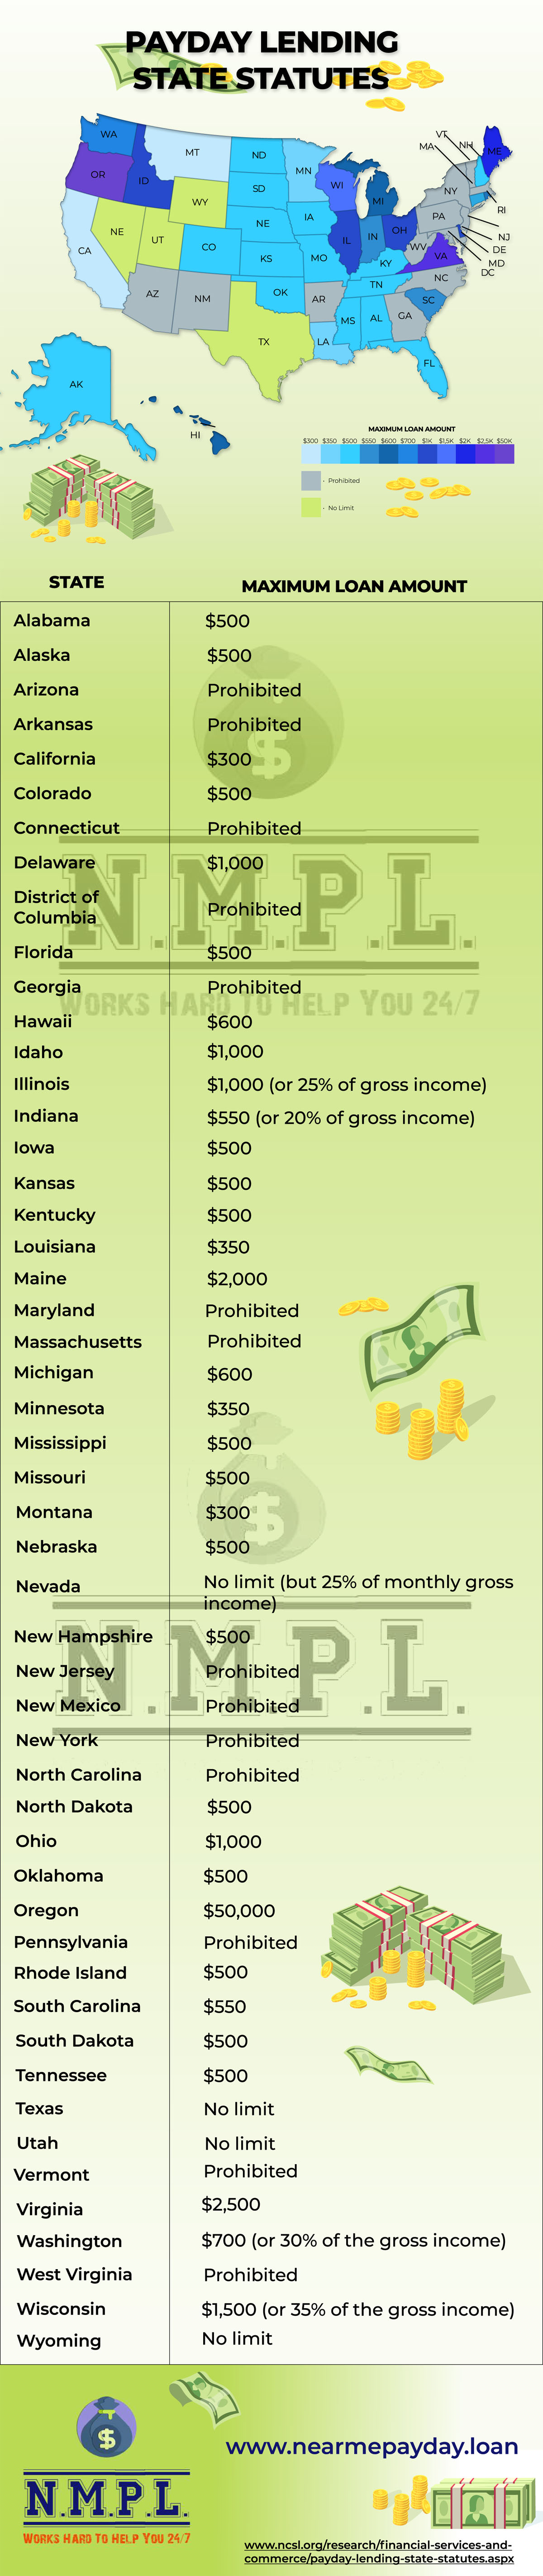 Payday Lending State Statutes in the USA